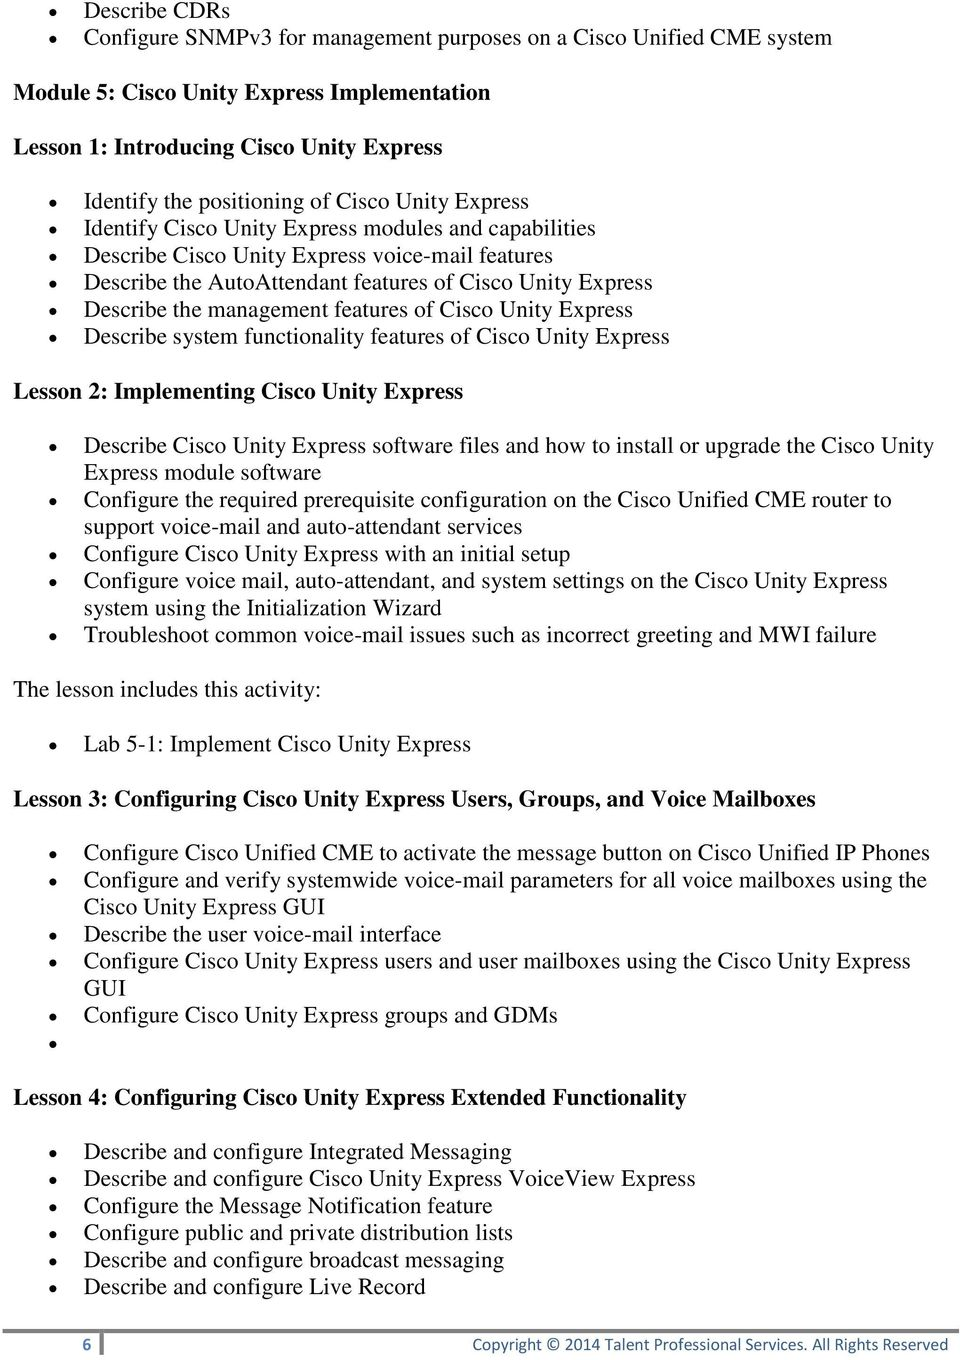 management features of Cisco Unity Express Describe system functionality features of Cisco Unity Express Lesson 2: Implementing Cisco Unity Express Describe Cisco Unity Express software files and how